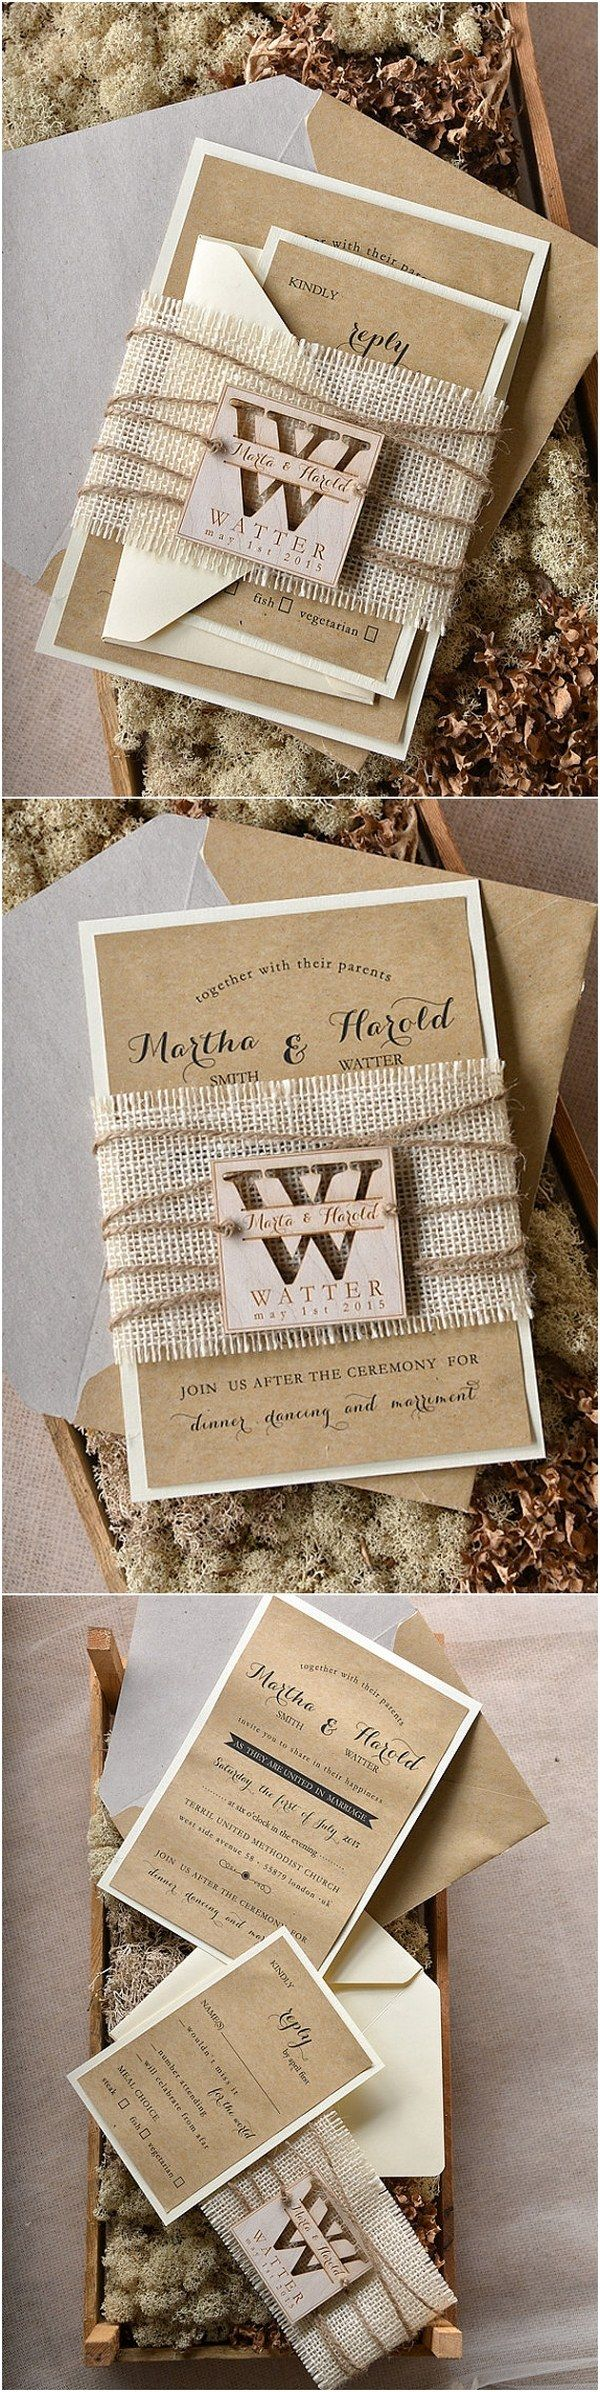 wedding invitation tips burlap wedding invitations - Burlap Wedding Invitations